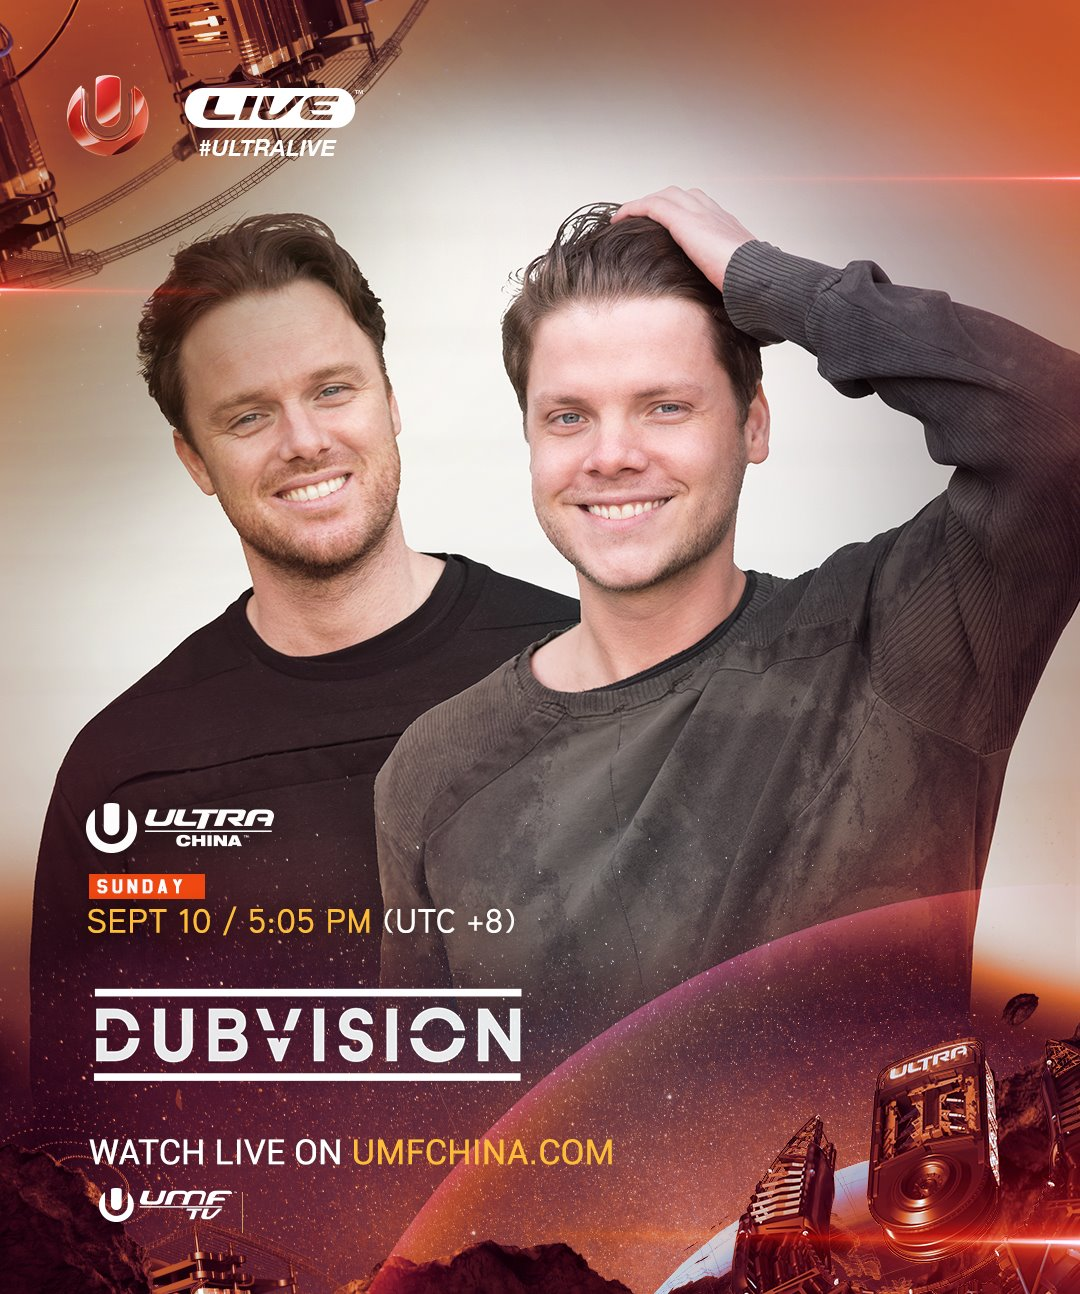 download → Dubvision - live at Ultra Music Festival 2017 (China) - 10-Sep-2017